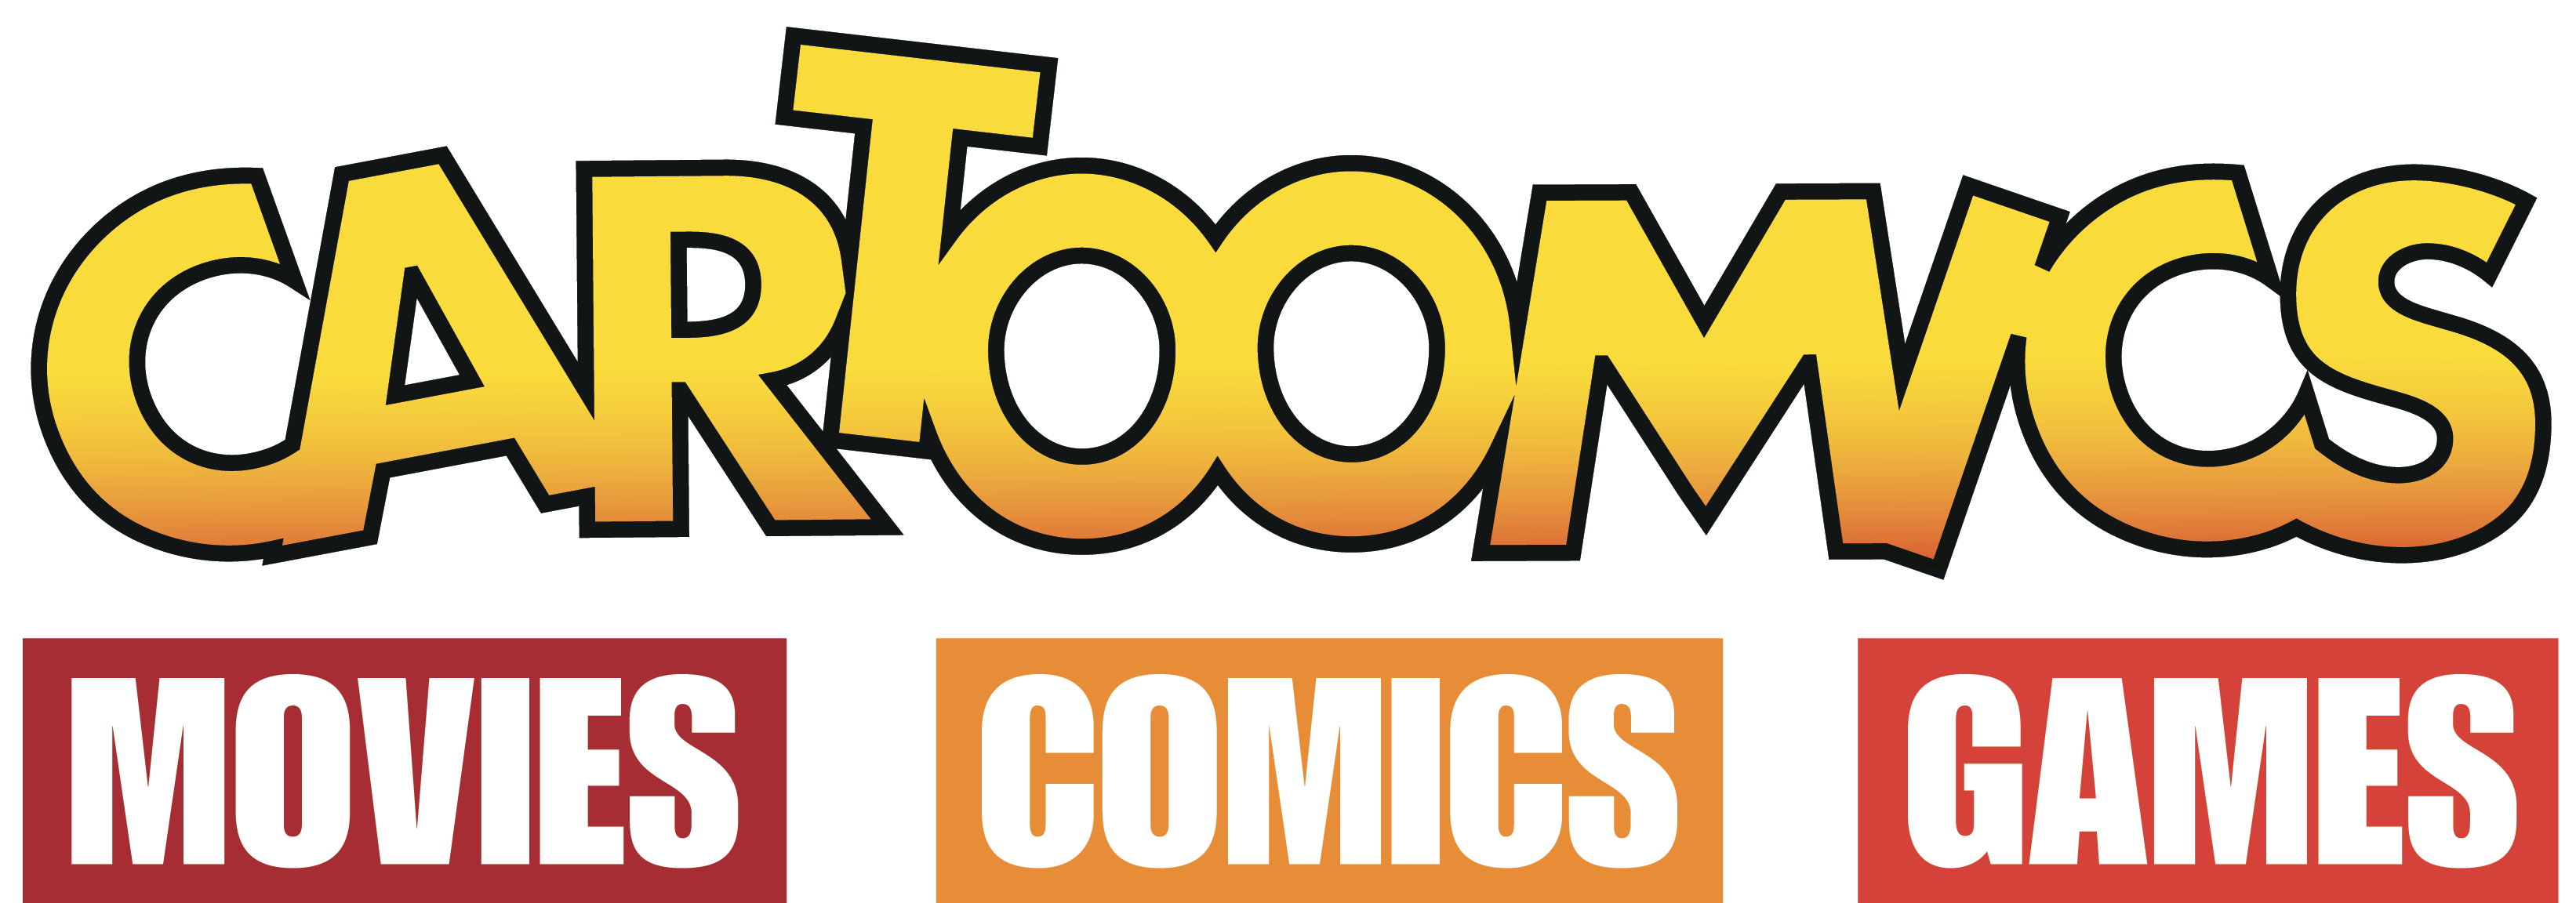 Cartoomics_logo_MCG_2014_OK